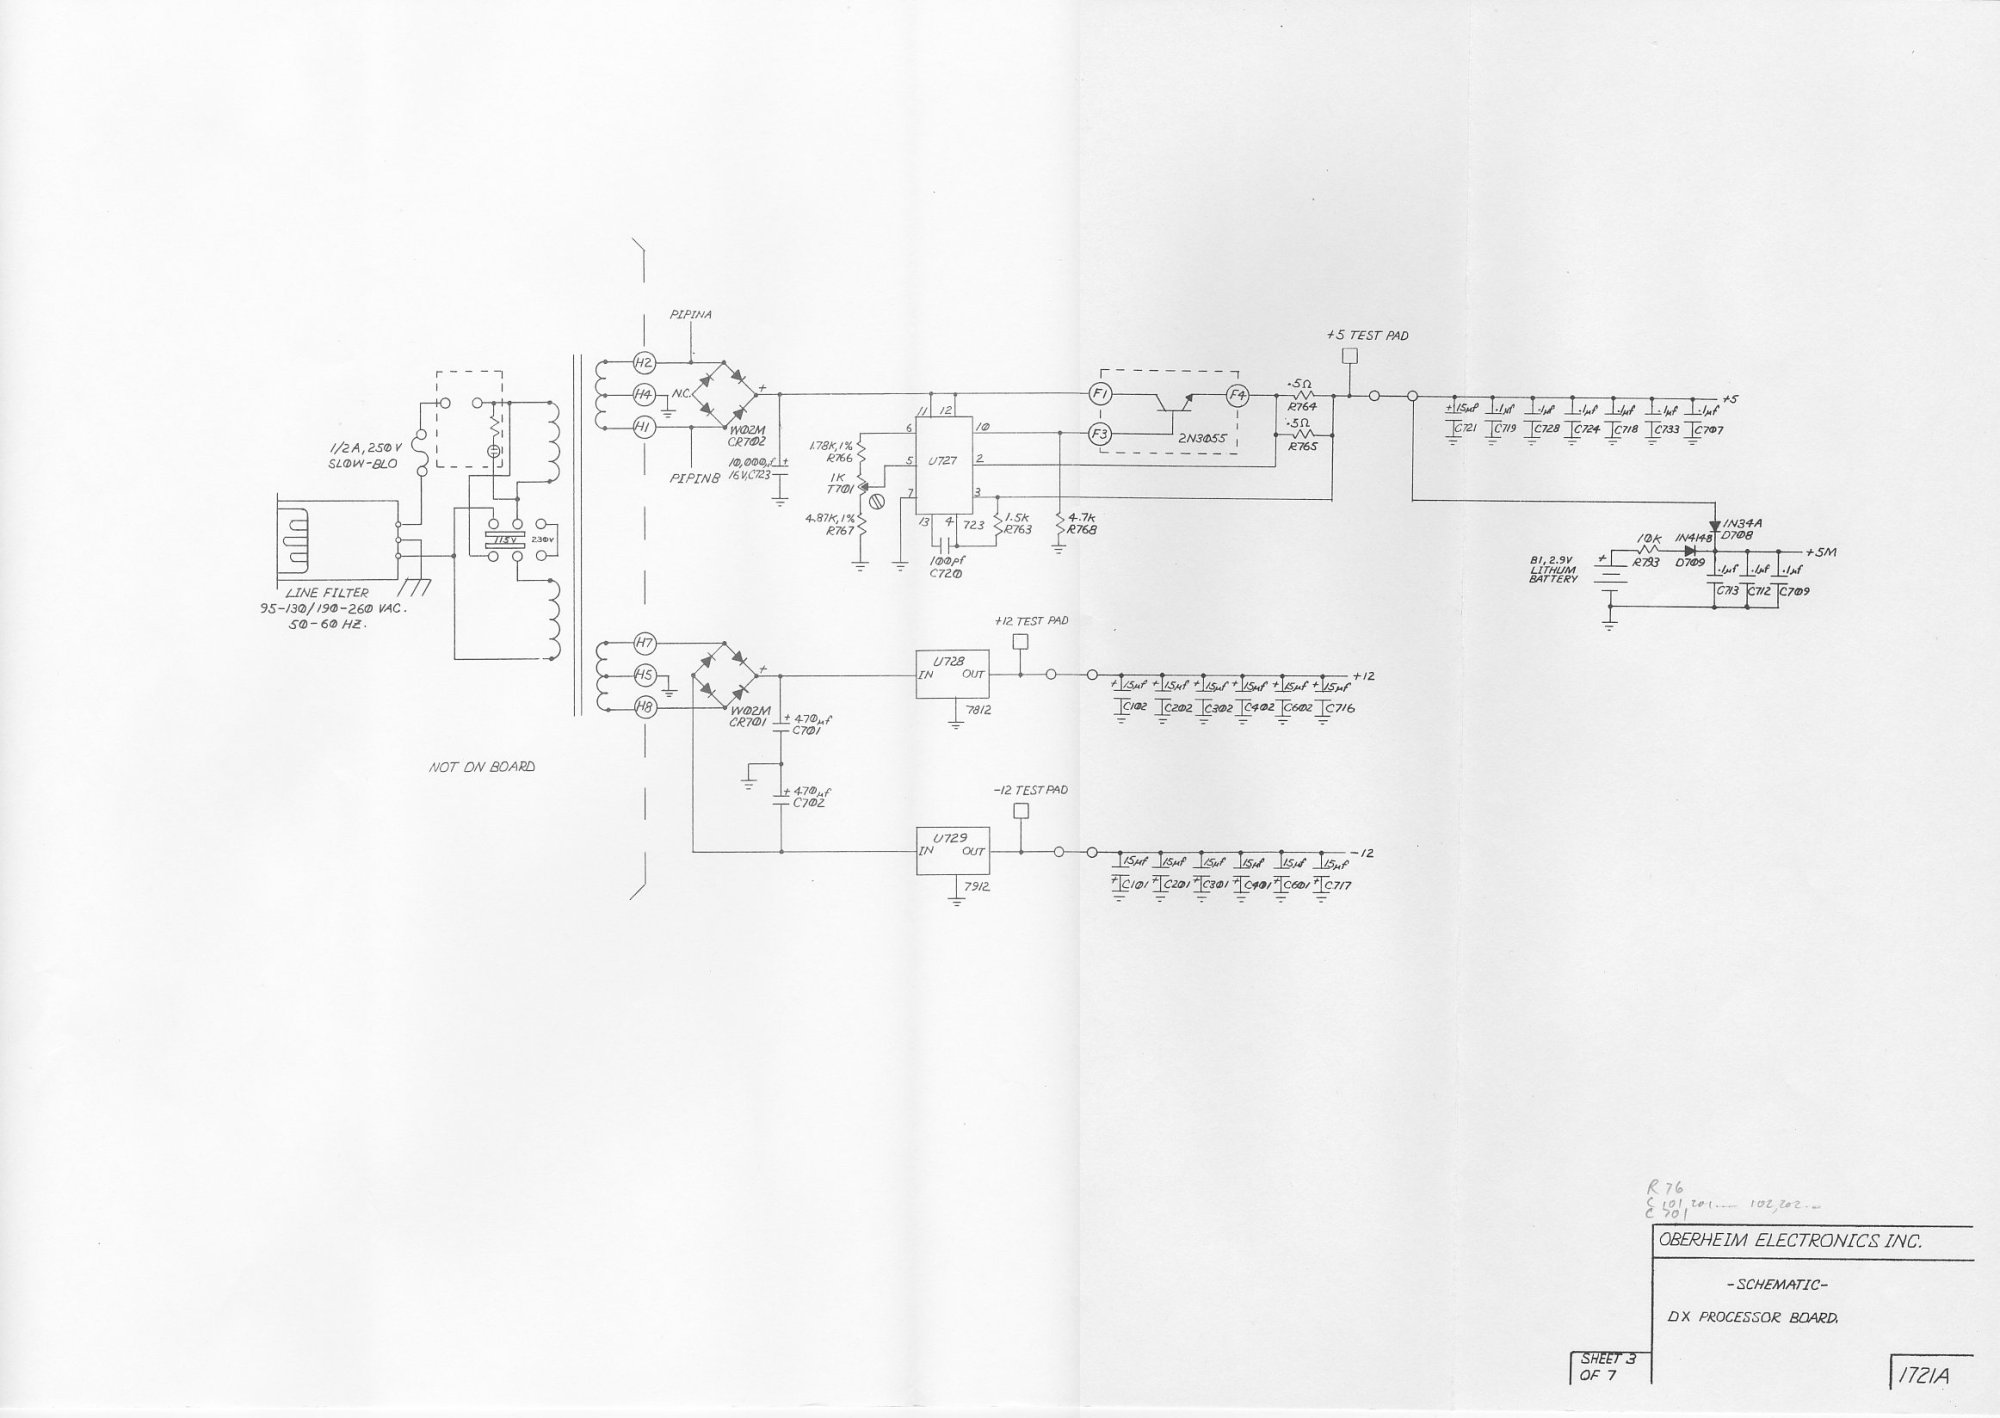 hight resolution of  dx main board schematic 3 of 7